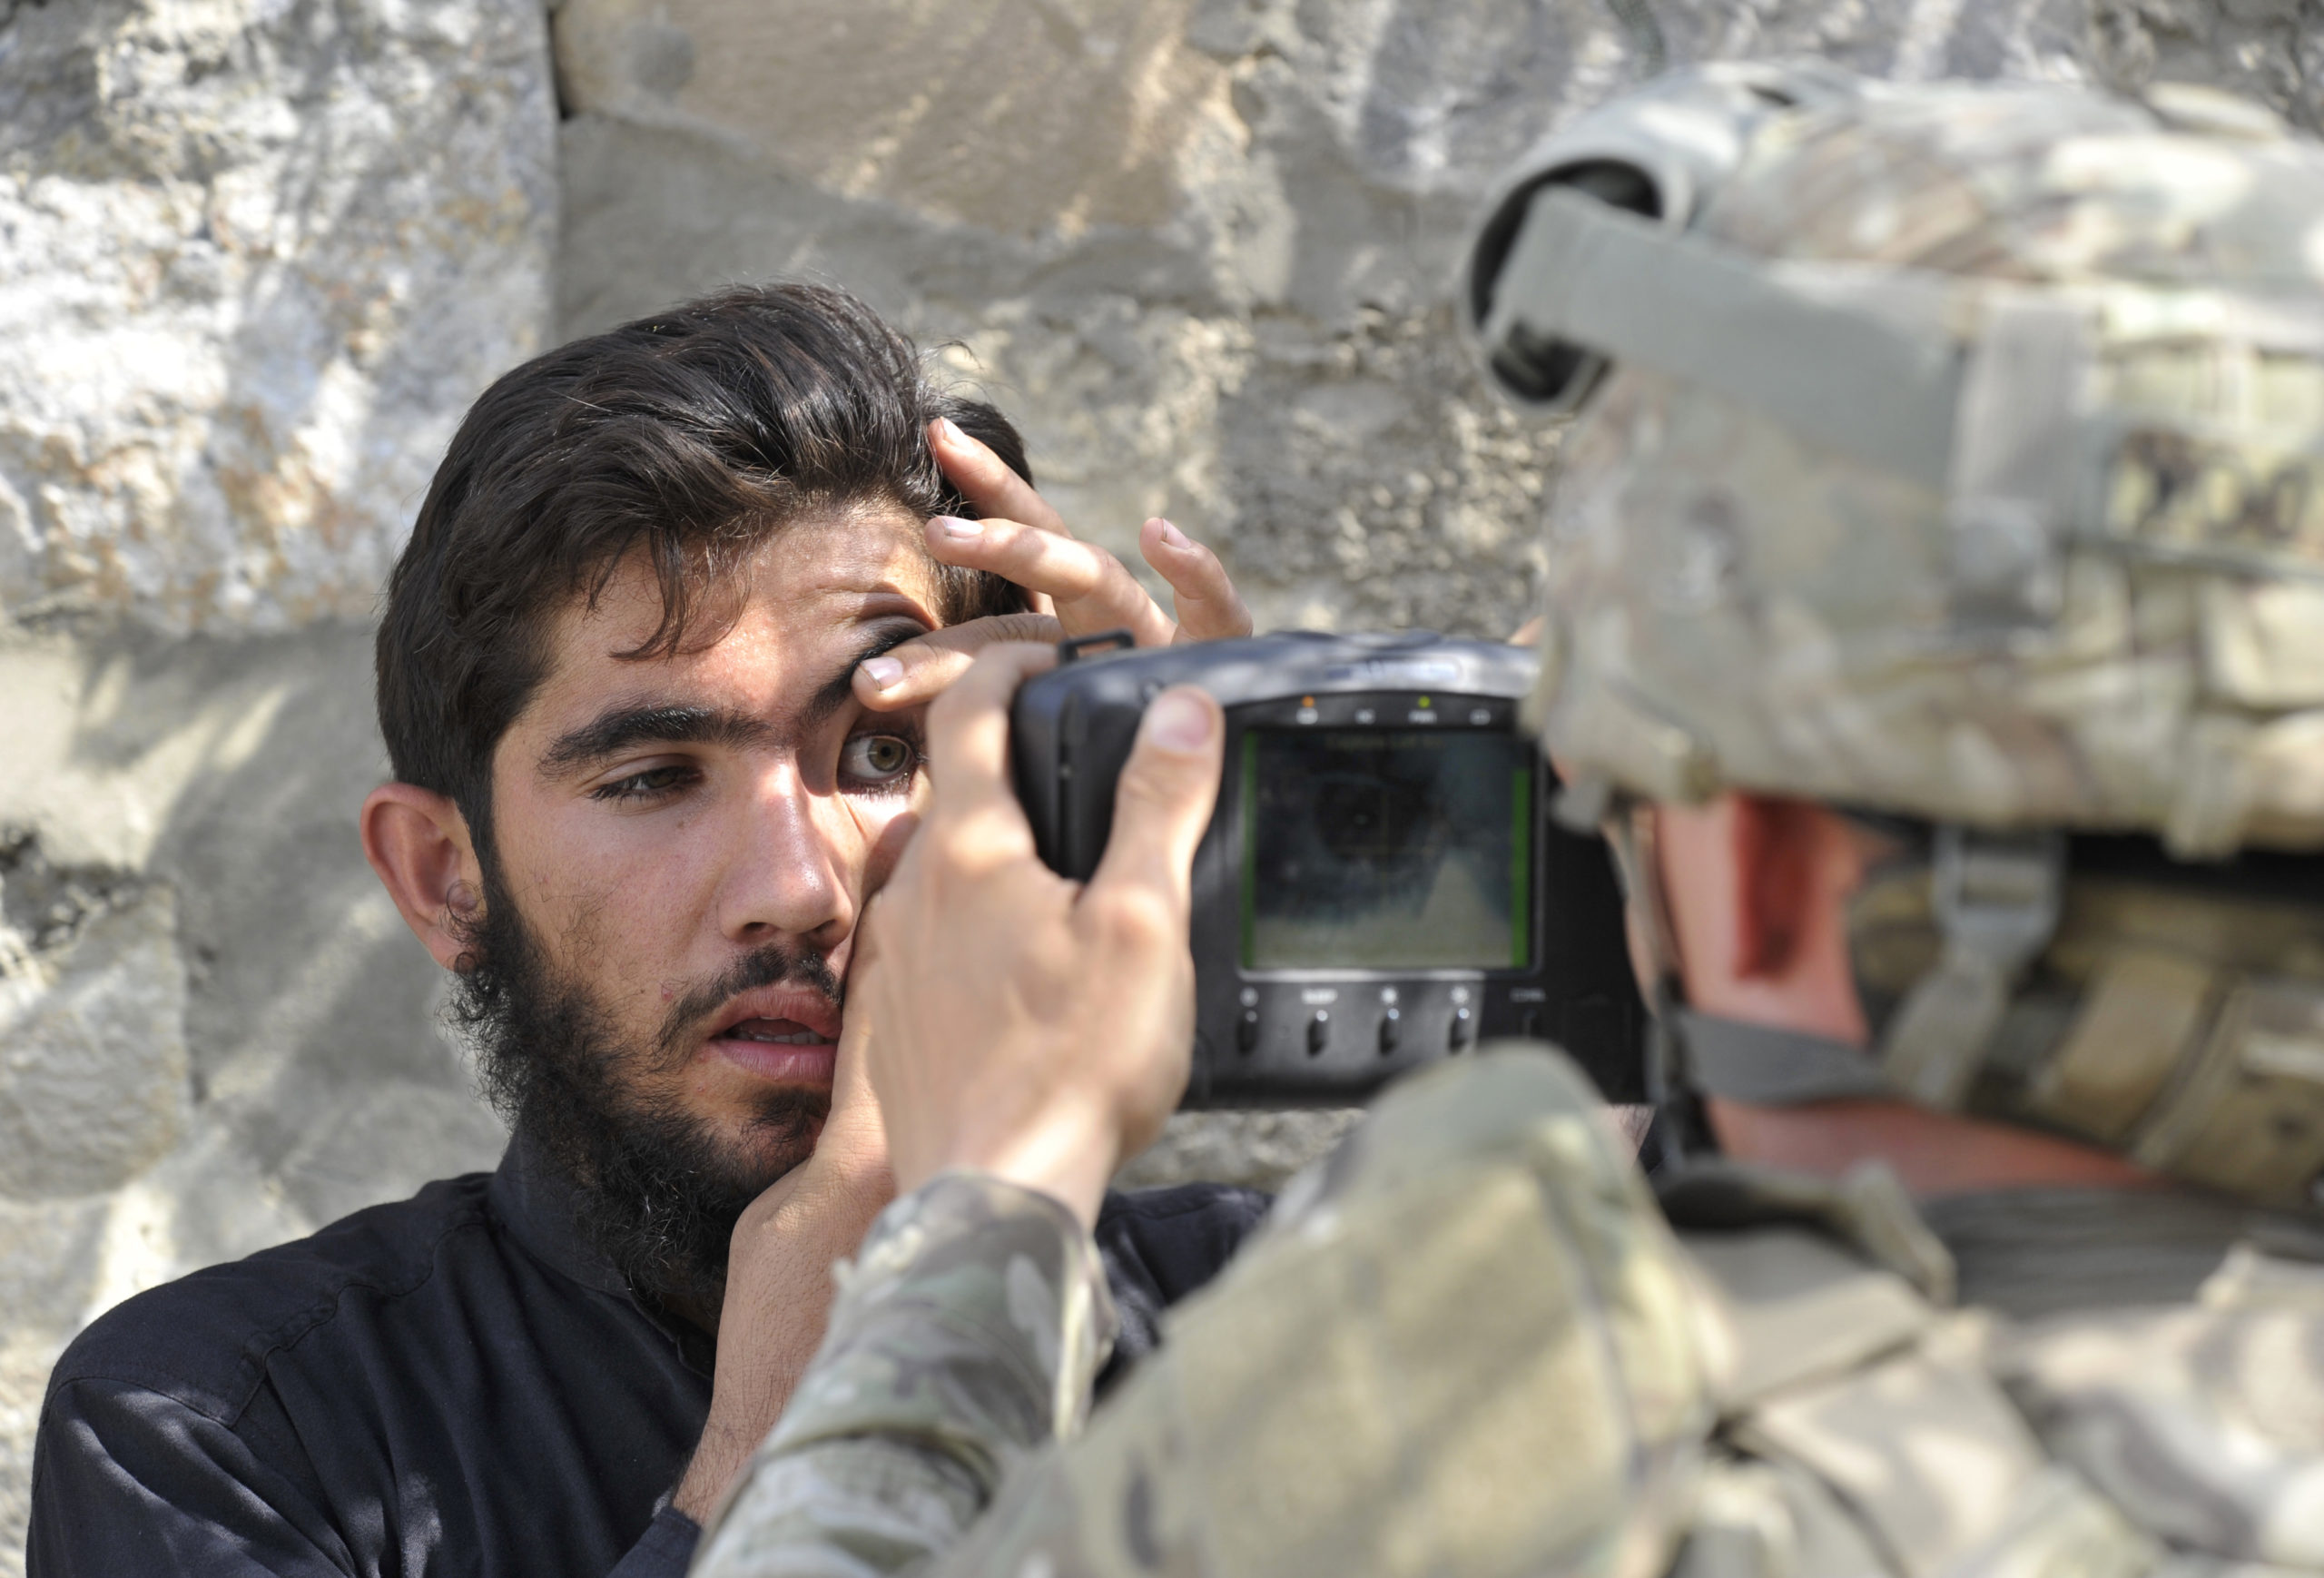 A US army soldier from The HHB 3-7 Field Artillery Regiment 3rd Bct 25th ID, scans the eyes of an Afghan resident with an Automated Biometric Identification System (ABIS) during a mission at Turkham on October 6, 2011, a border crossing town in the Nangarhar province of Afghanistan and the Khyber Agency of Pakistan's Federally Administered Tribal Areas. The new Afghan-Indian security pact could inflame Pakistan's proxy war against India and threatens Islamabad's regional ambitions in South Asia, as ties with Kabul and Washington hit rock bottom. Kabul claims the recent murder of its peace envoy Burhanuddin Rabbani was plotted in Pakistan, and has accused Islamabad of hindering the investigation. AFP PHOTO/TAUSEEF MUSTAFA (Photo credit should read TAUSEEF MUSTAFA/AFP via Getty Images)